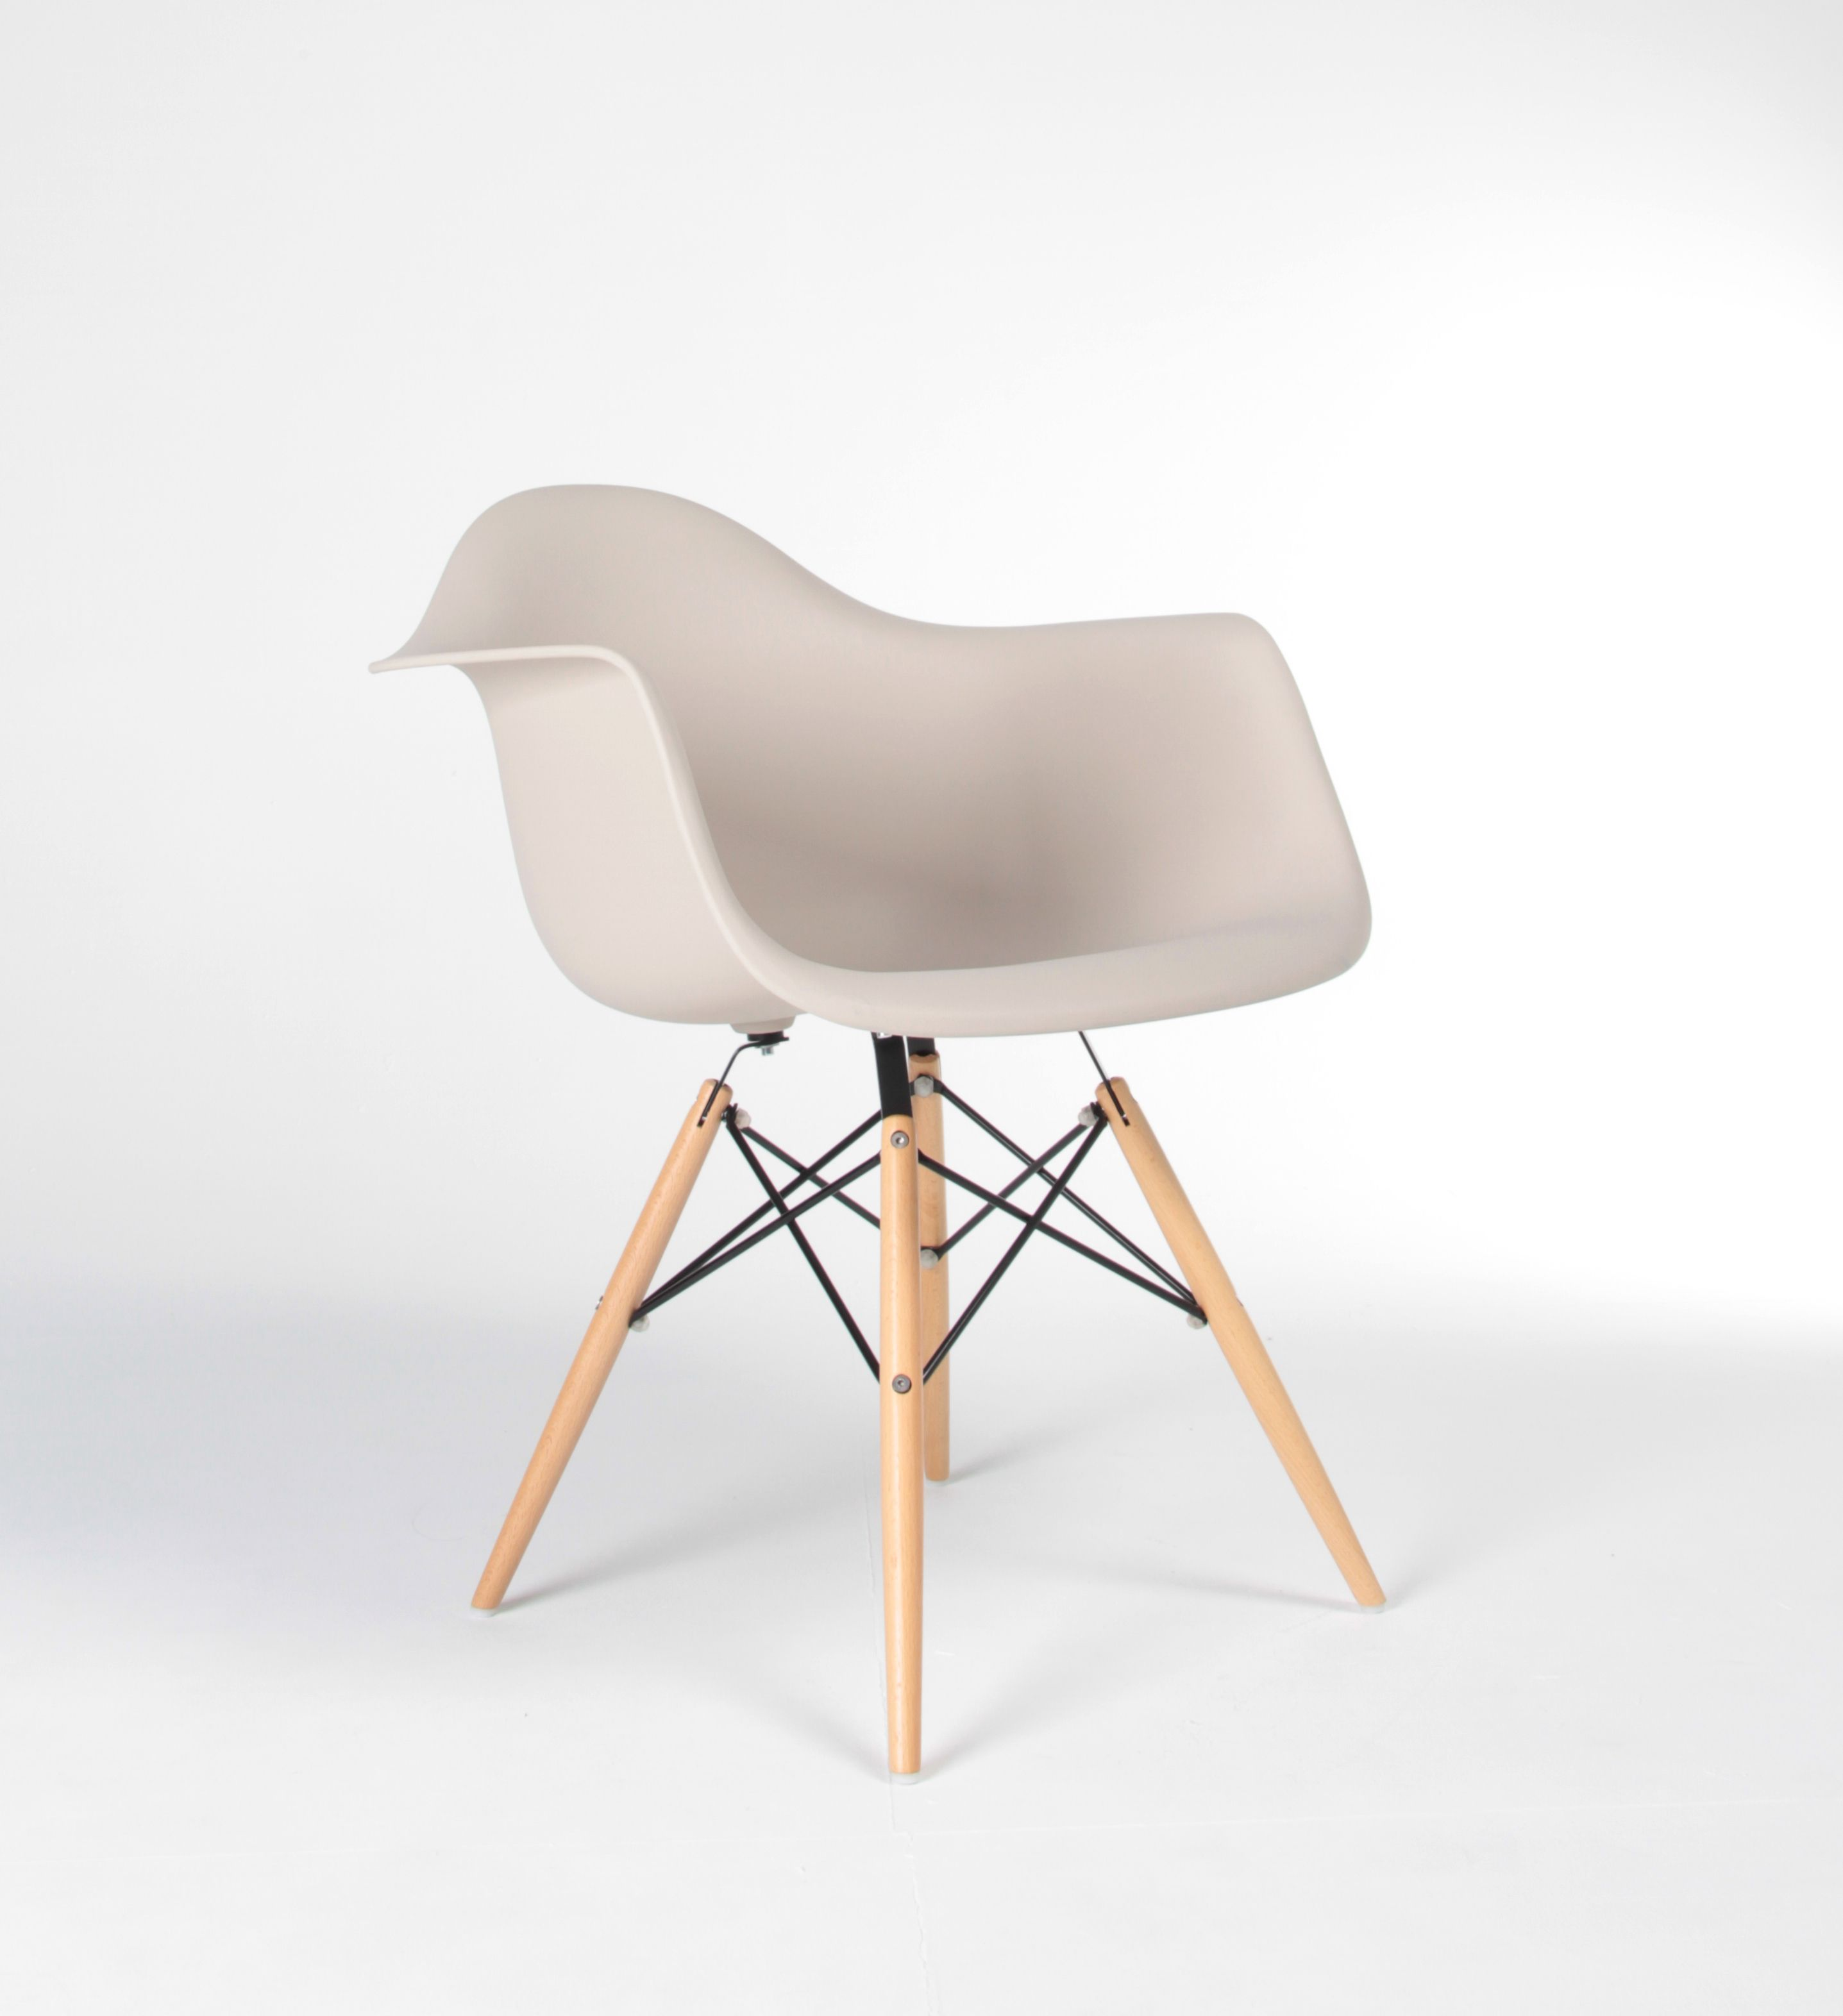 Nathan Rhodes Design Replica Eames DAW Chair, Finished In Beige PP Plastic.  Also Available